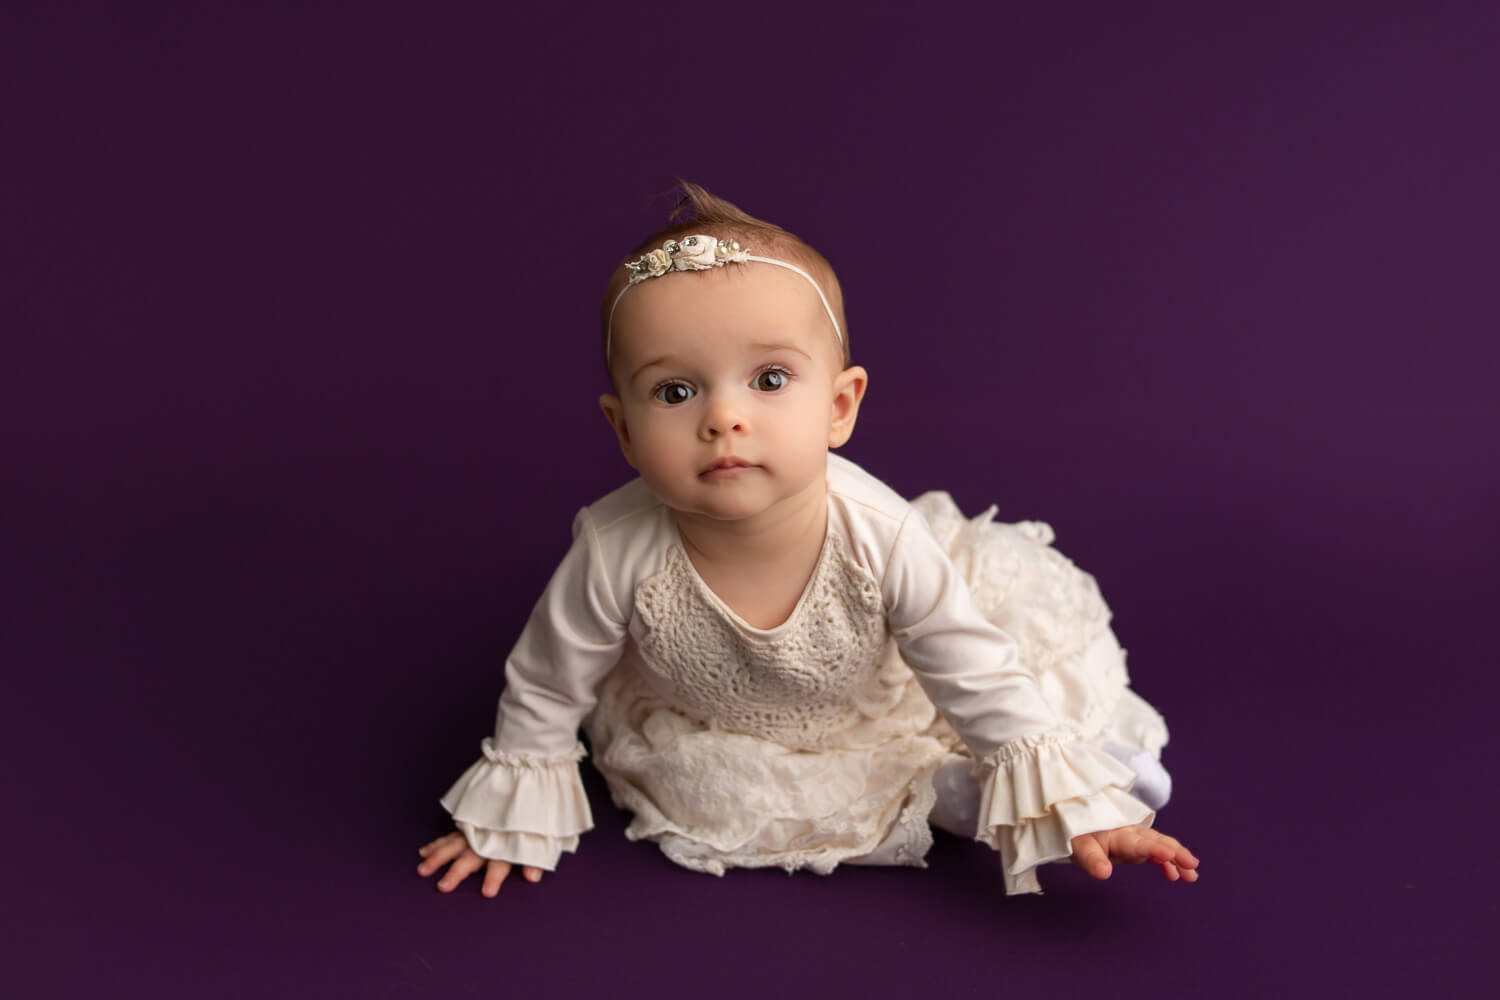 one year old on purple backdrop photoshoot